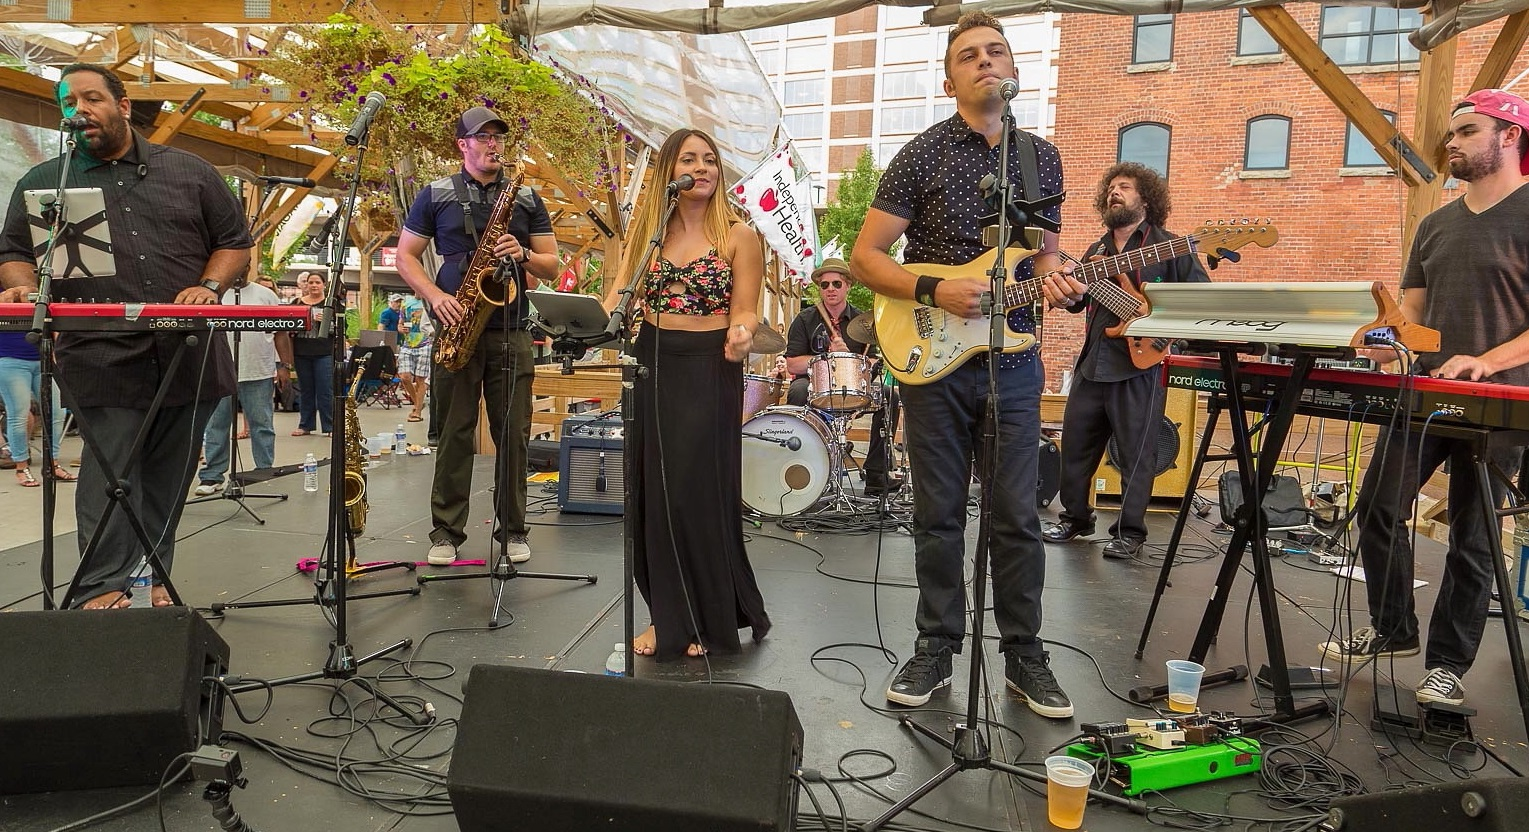 The Buffalovebirds performing at the final Live at Larkin of 2016. The new schedule for 2017 is announced today. (Don Nieman/Special to The News)